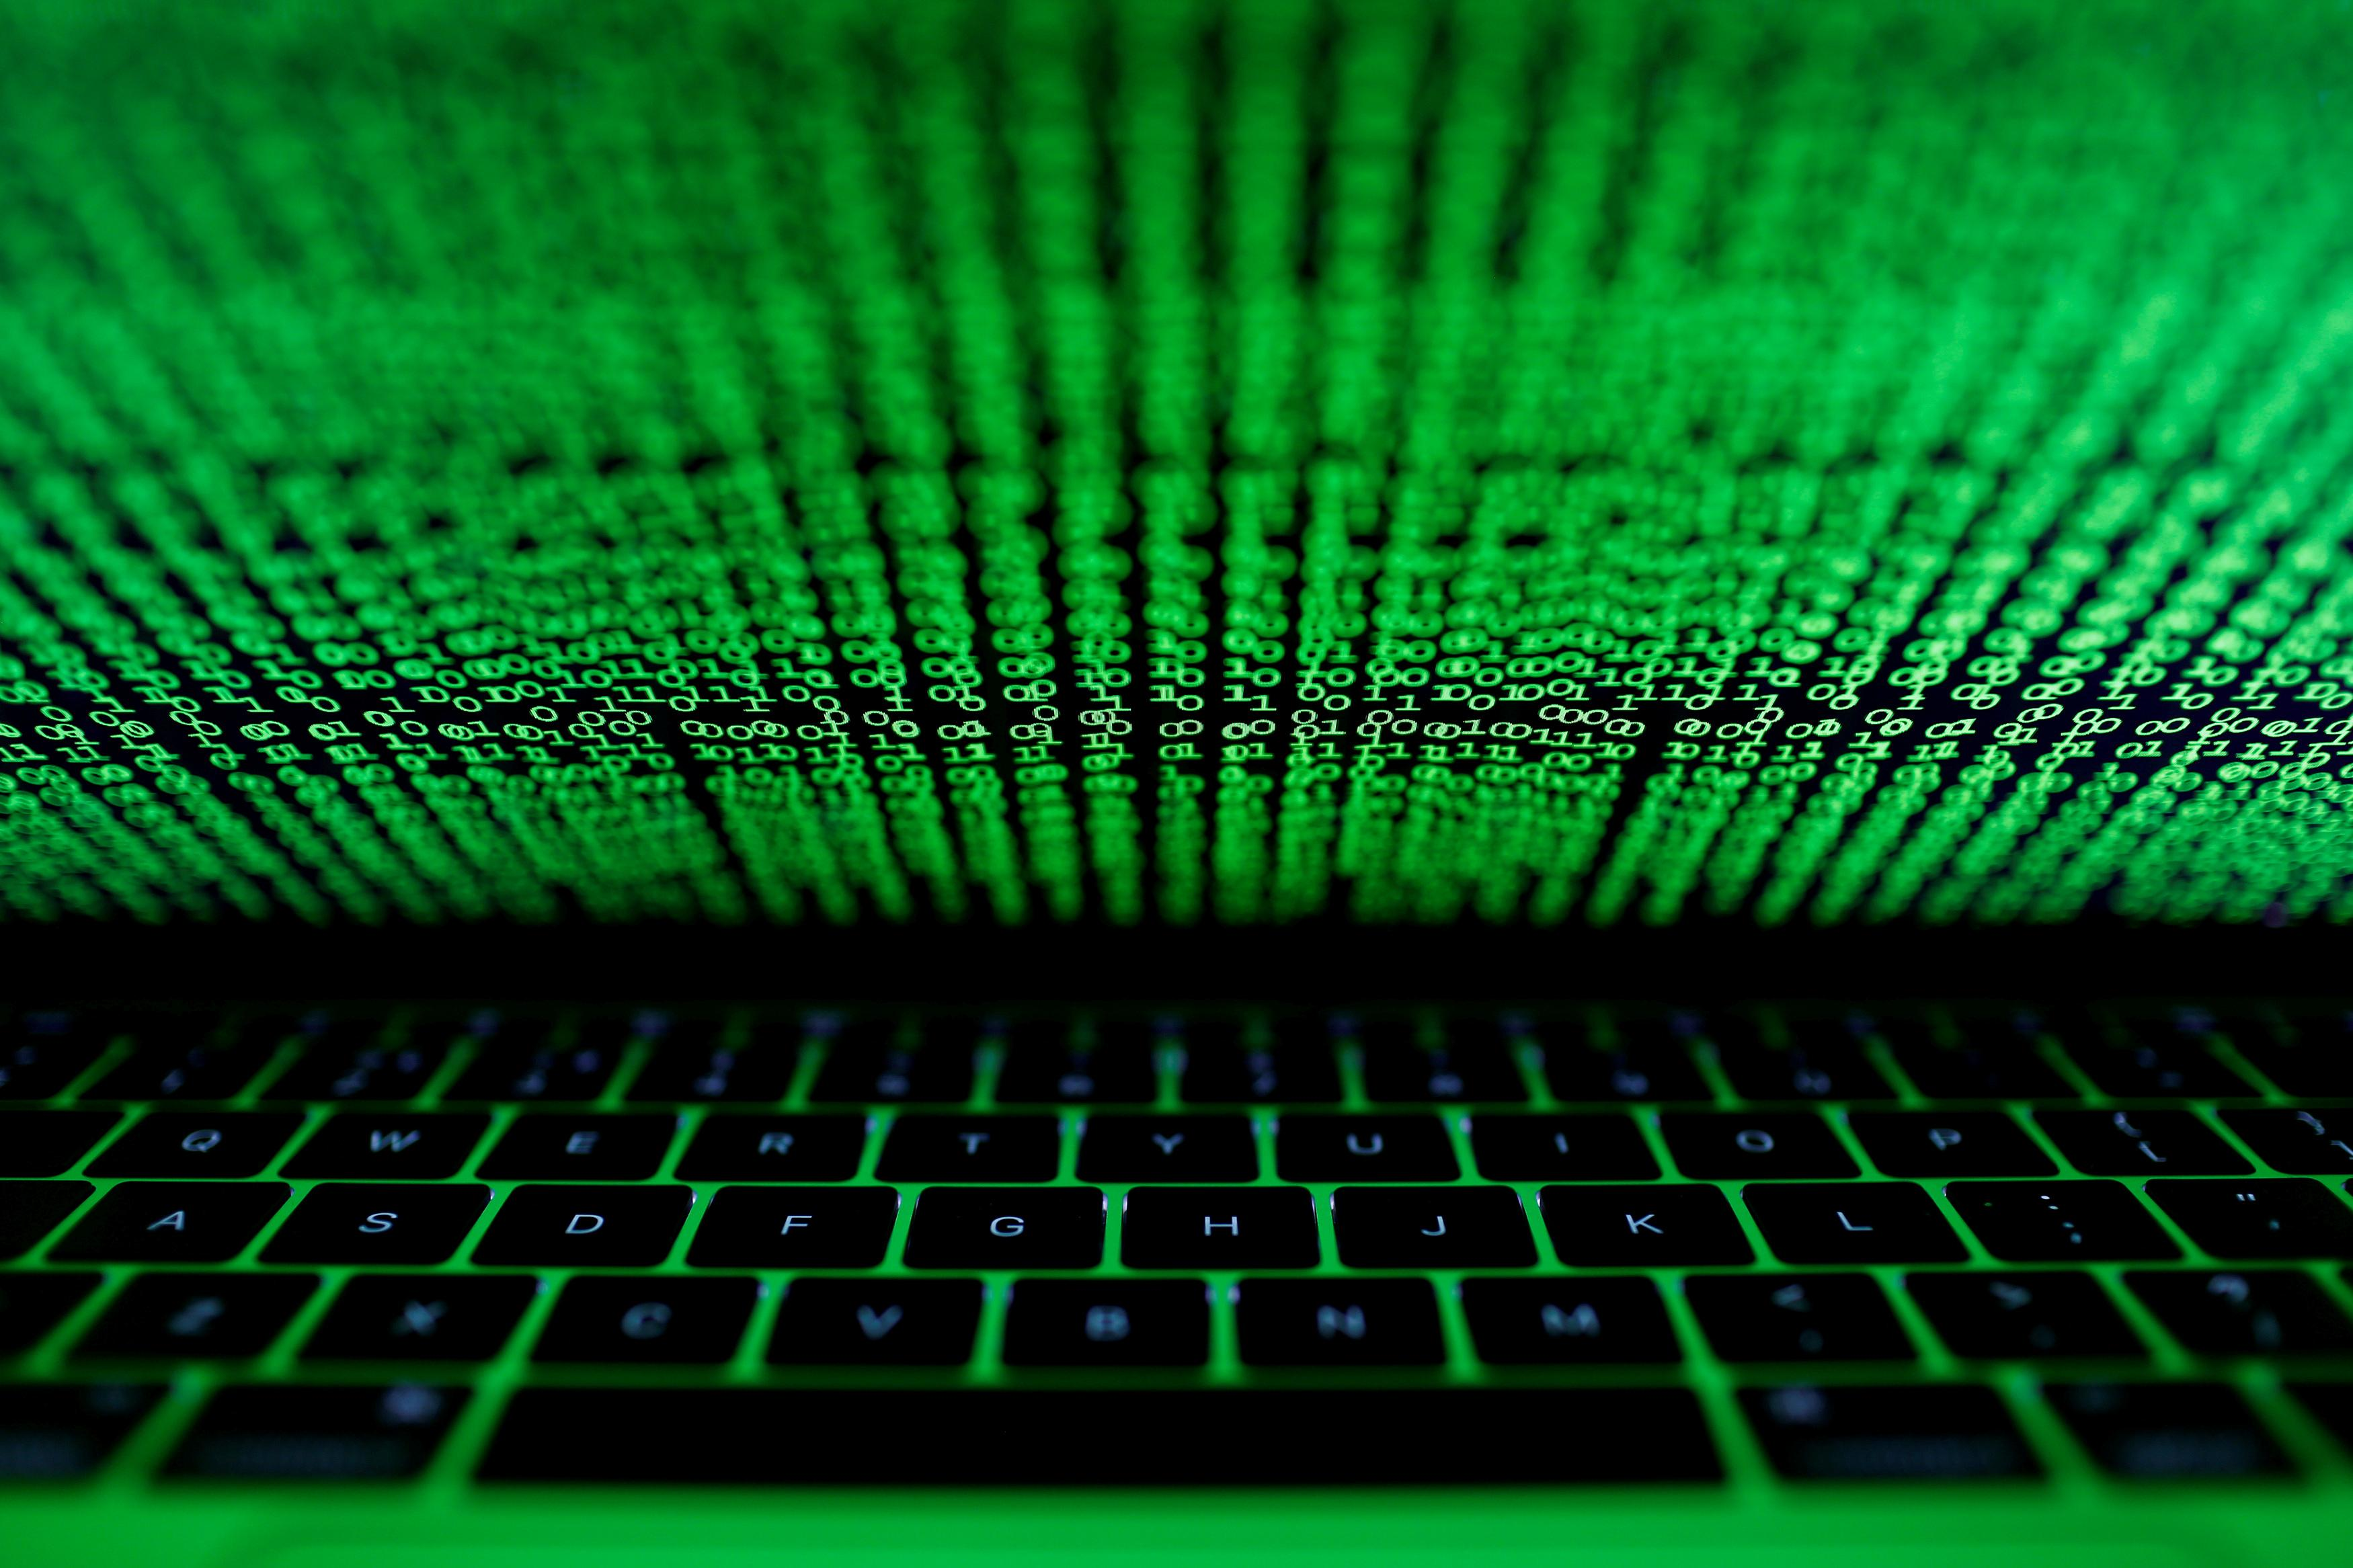 Hackers hit UK political parties with back-to-back cyberattacks